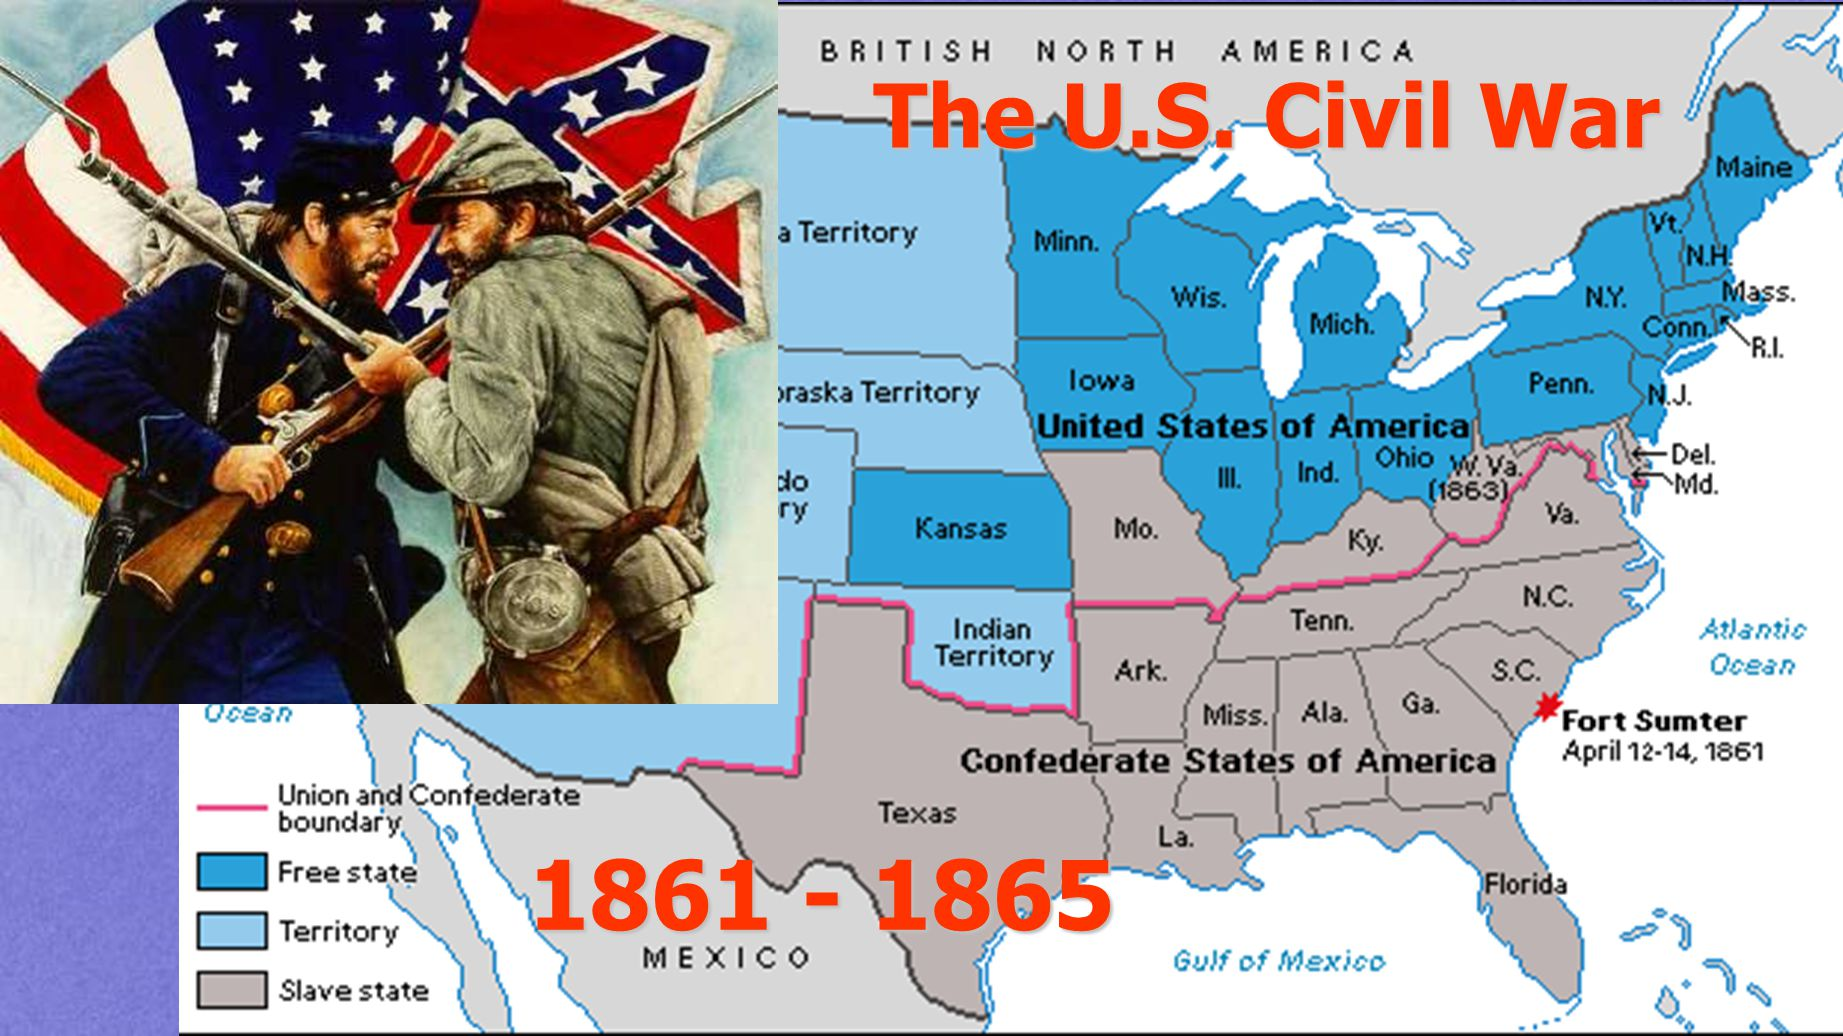 The U.S. Civil War 1861 - 1865